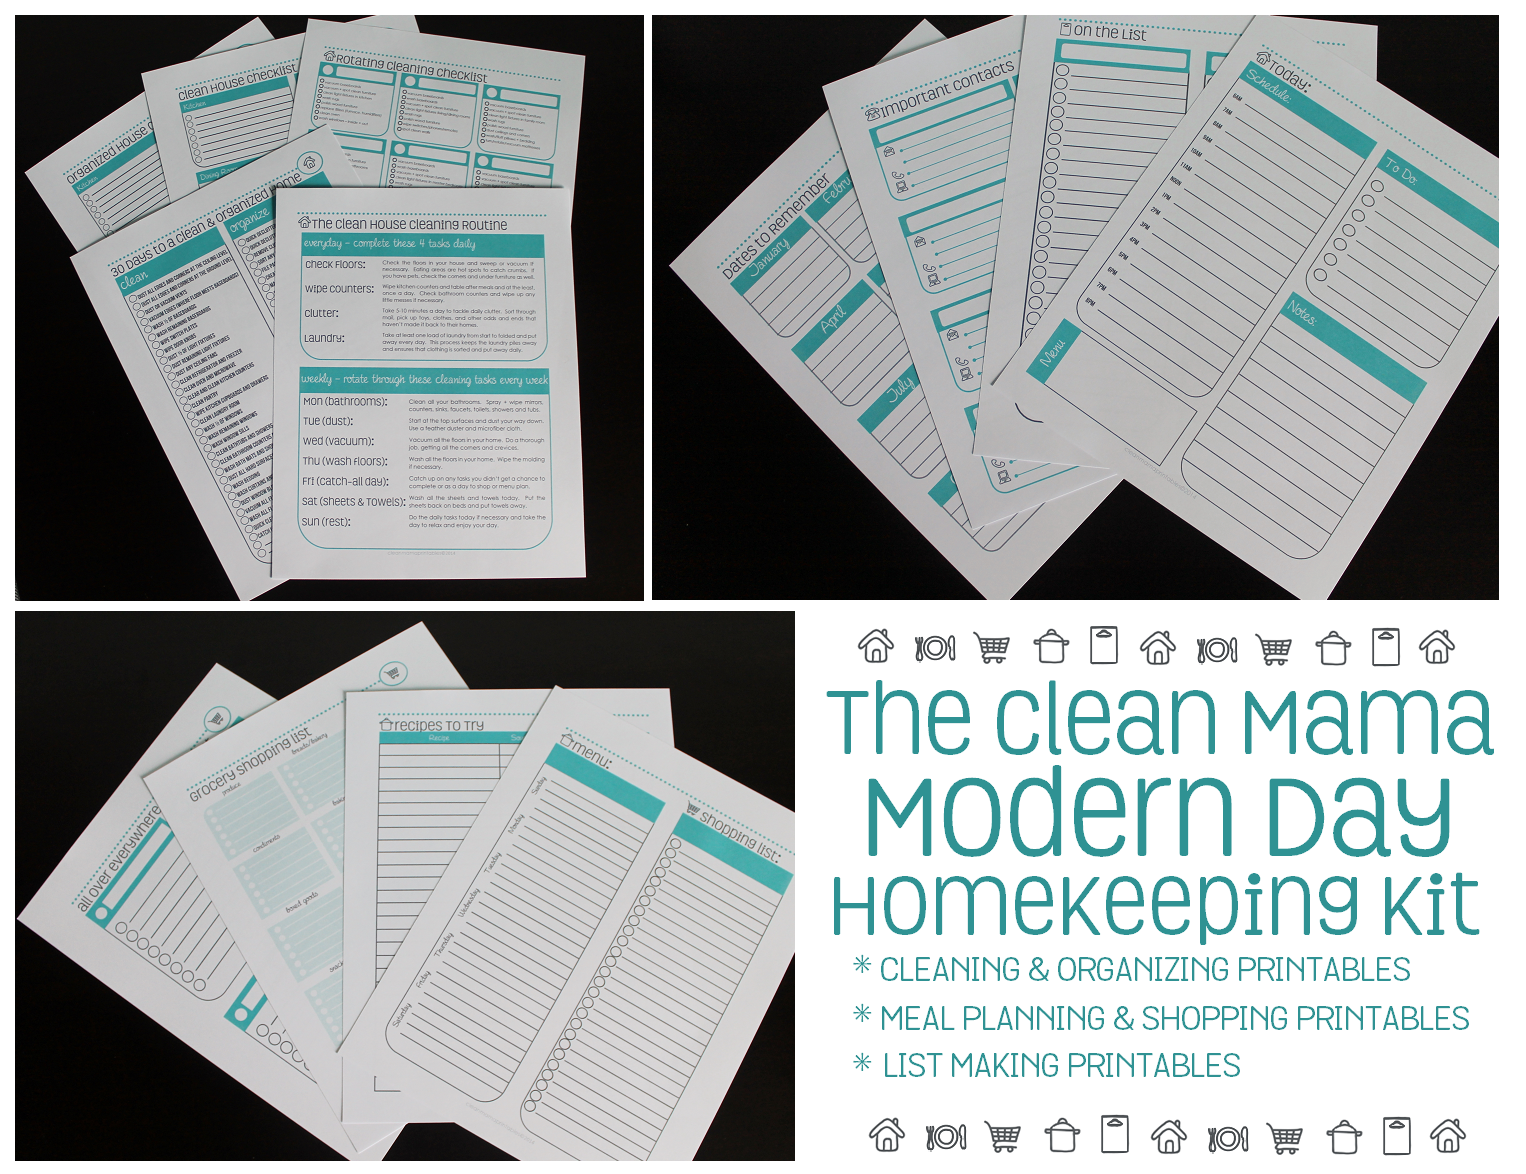 The Clean Mama Modern Day Homekeeping Kit 2 via Clean Mama